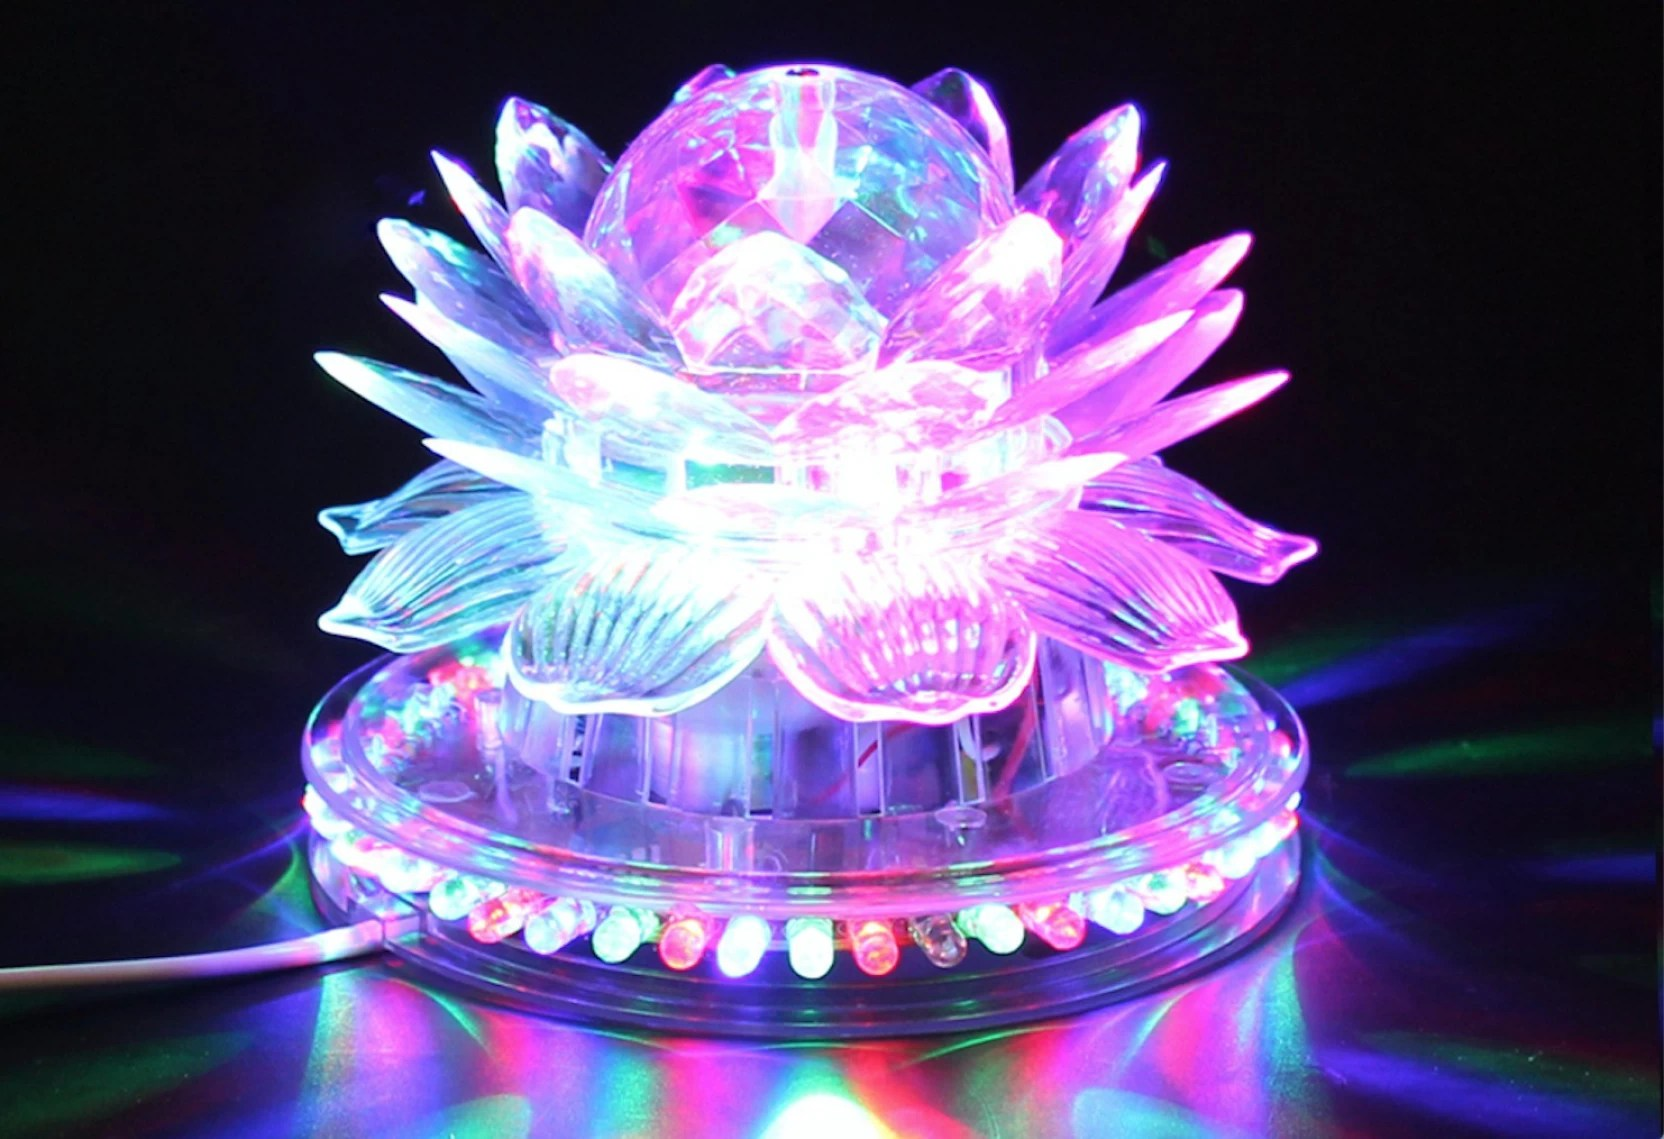 Light Decoration Diwali A To Z Traders Lotus Rotating Flashing Dj Laser Led Light Disco Party Diwali Home Decoration Table Lamp